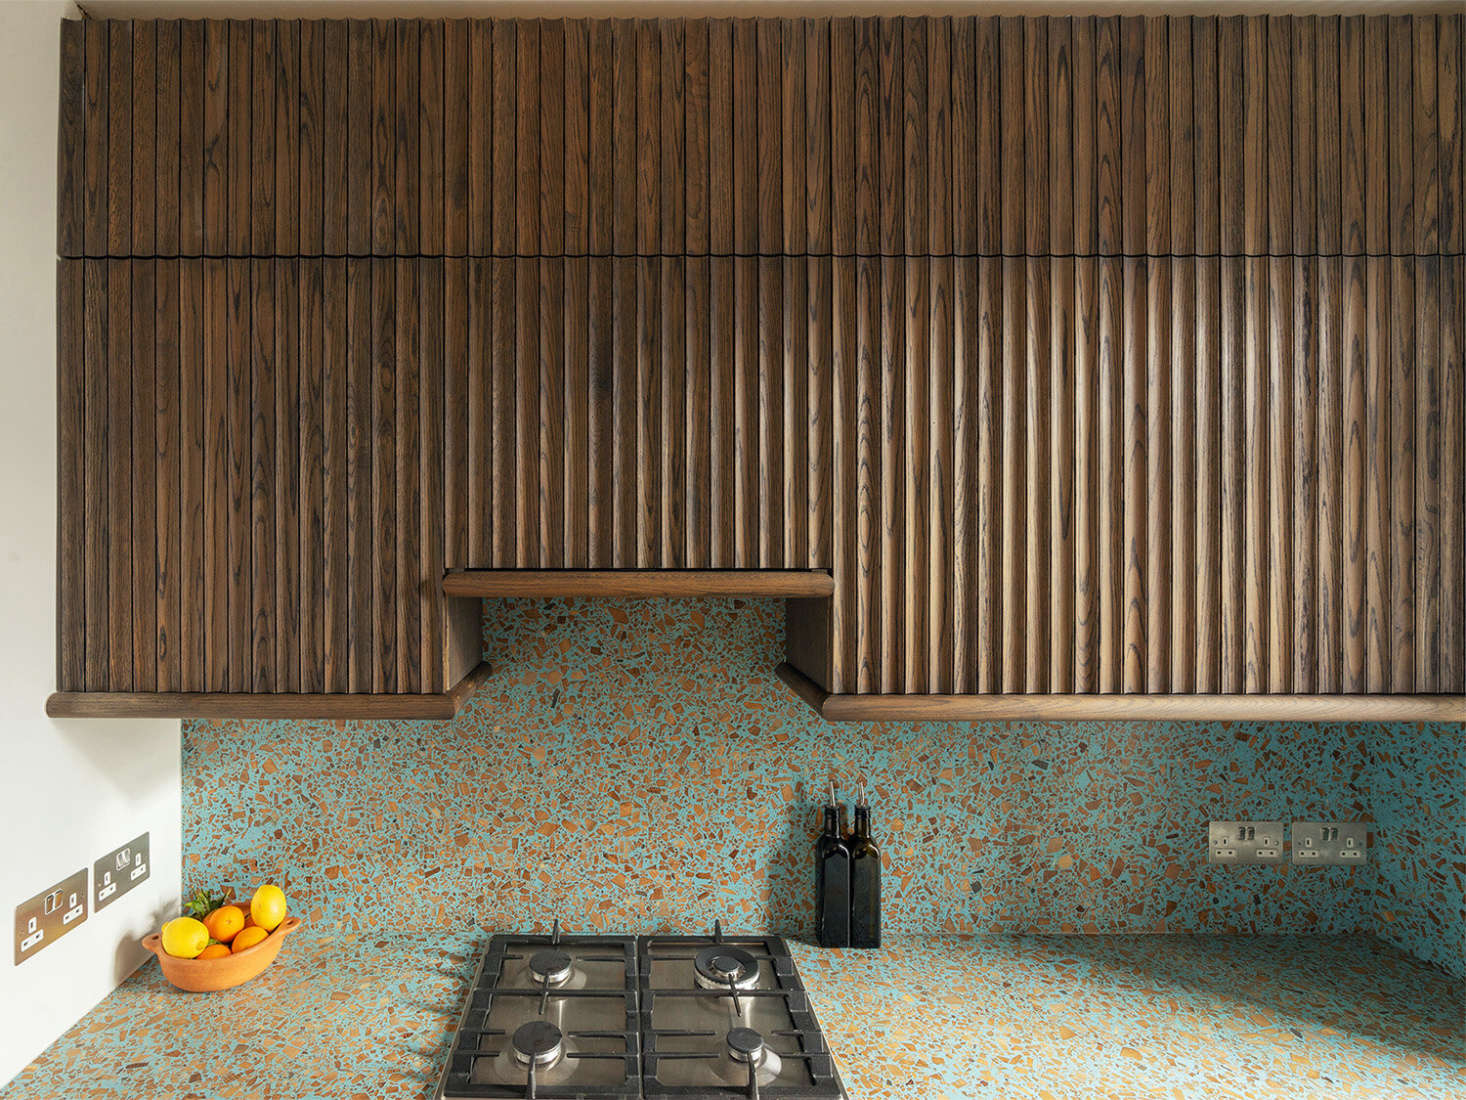 Fluted oak cabinets meet terrazzo in a compact London kitchen by Surman Weston architects. The counter and backsplash are Foresso, a composite sheet material made from, among other things, scrap wood, waste from sawmills, and waste lime plaster.